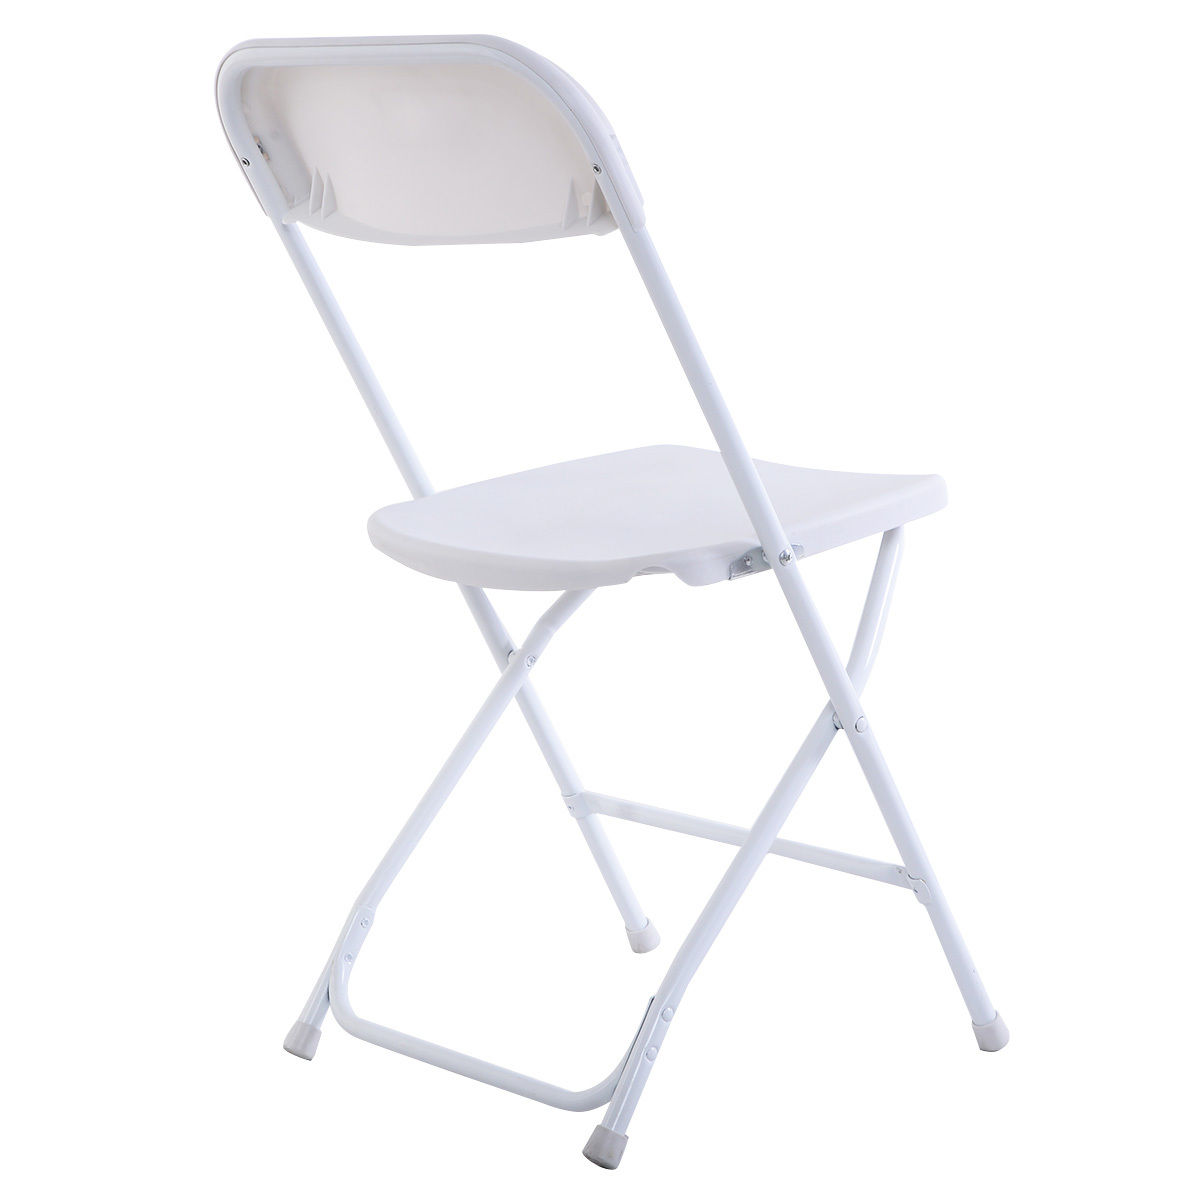 quality folding chairs chair hammock stand 10 pack commercial wedding stackable plastic